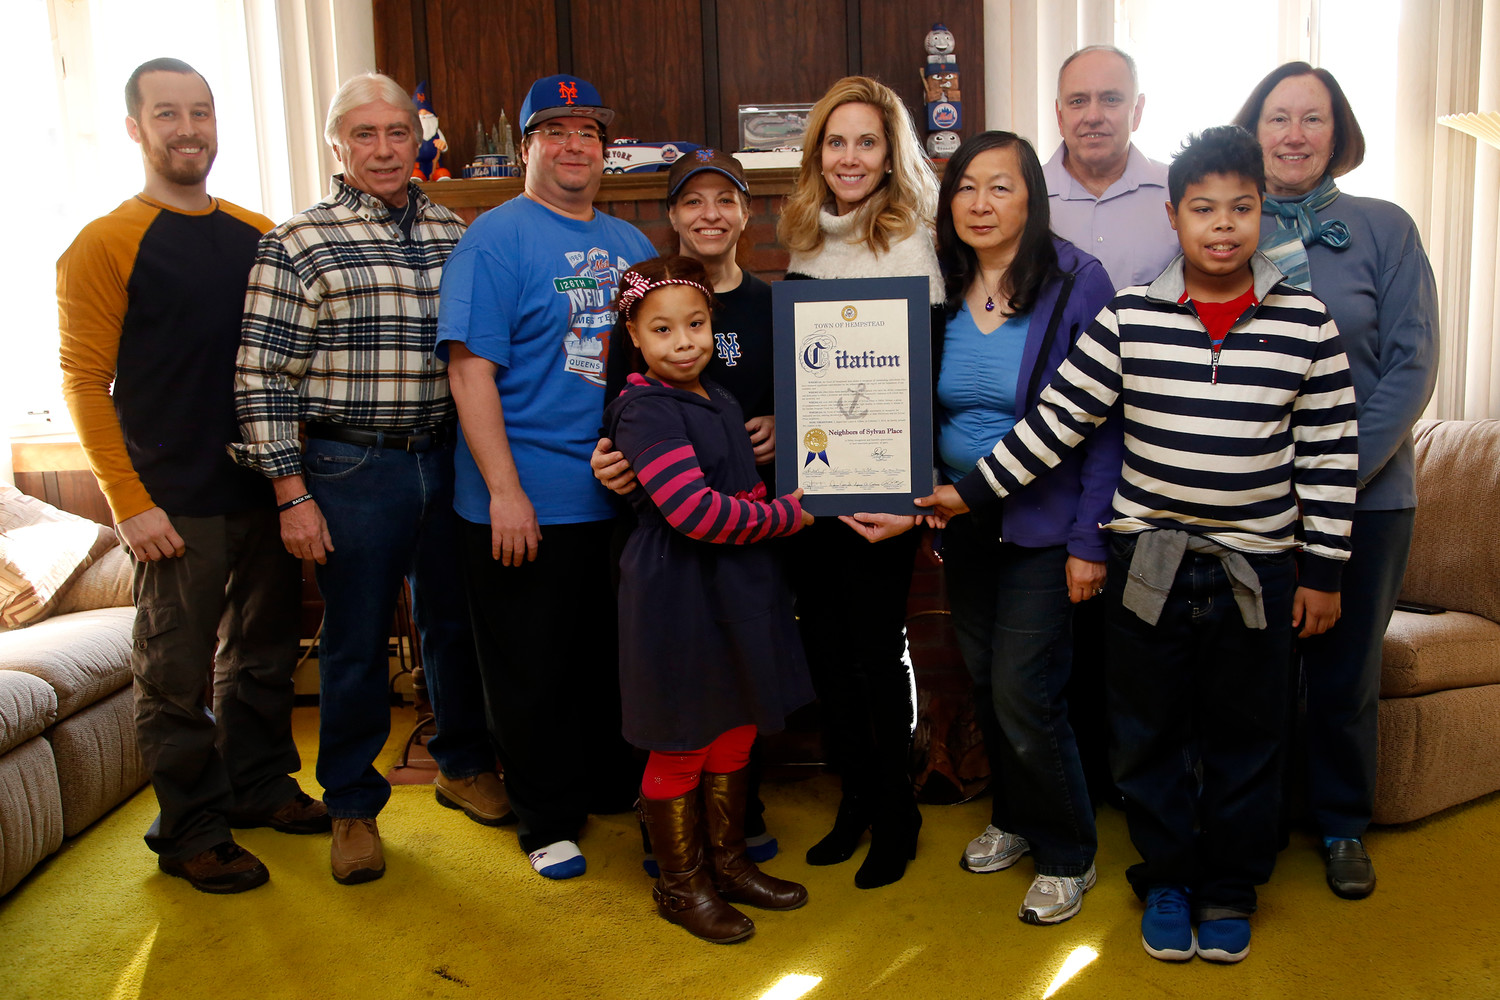 Town Supervisor Laura Gillen presented a citation to Sylvan Place neighbors.